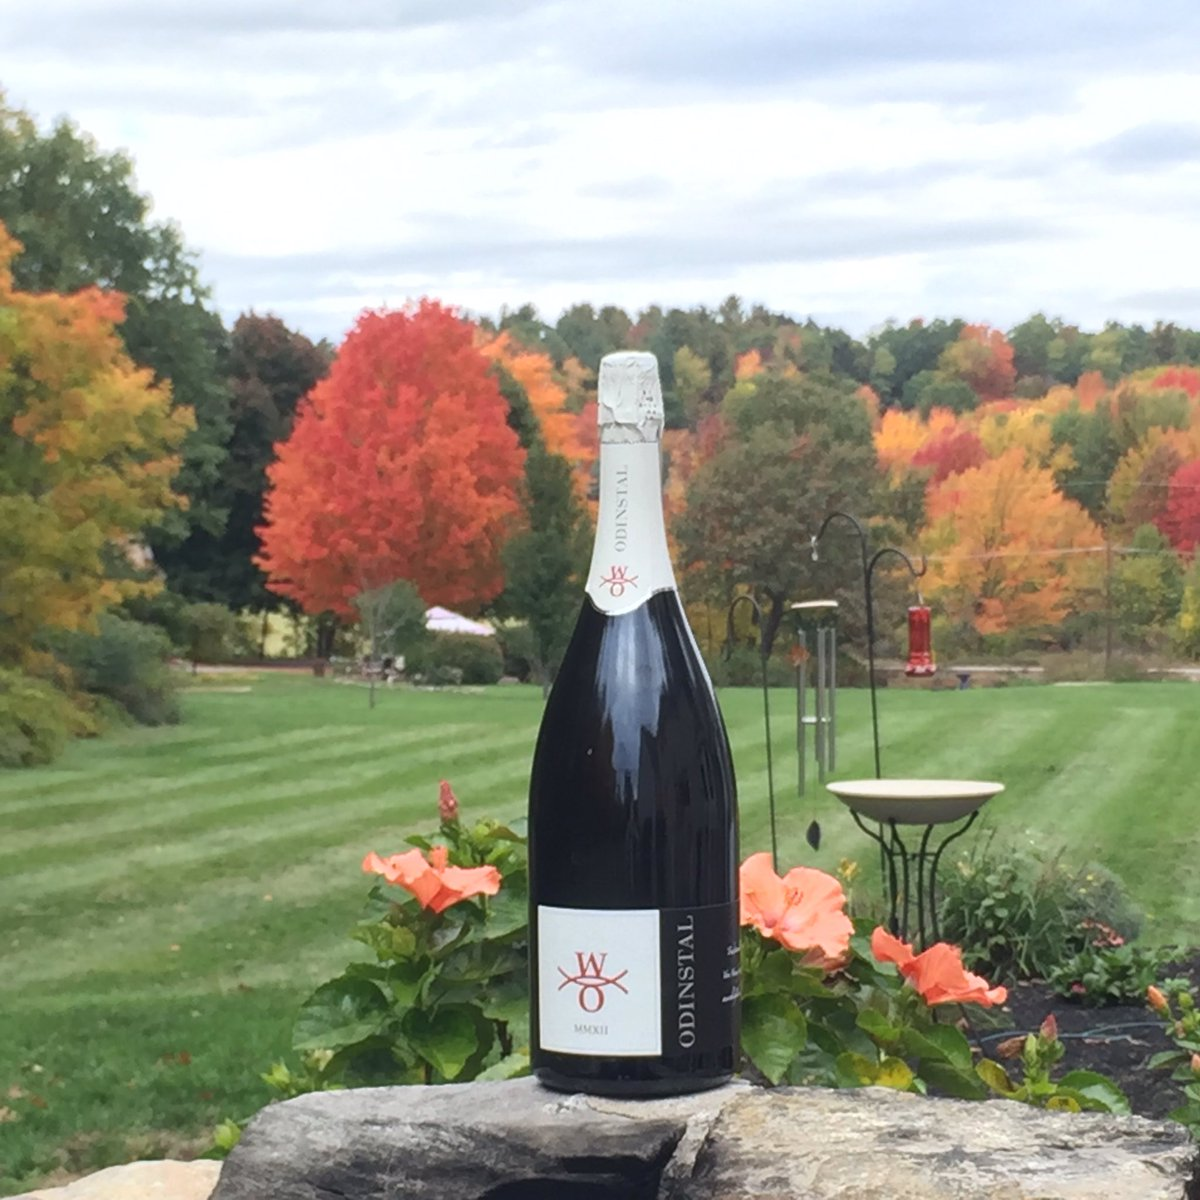 test Twitter Media - What's better than Fall in New England? This wine! #Odinstal #Magnum #Sekt #Riesling #vintage #WineWednesday https://t.co/Lo2uANyWxY